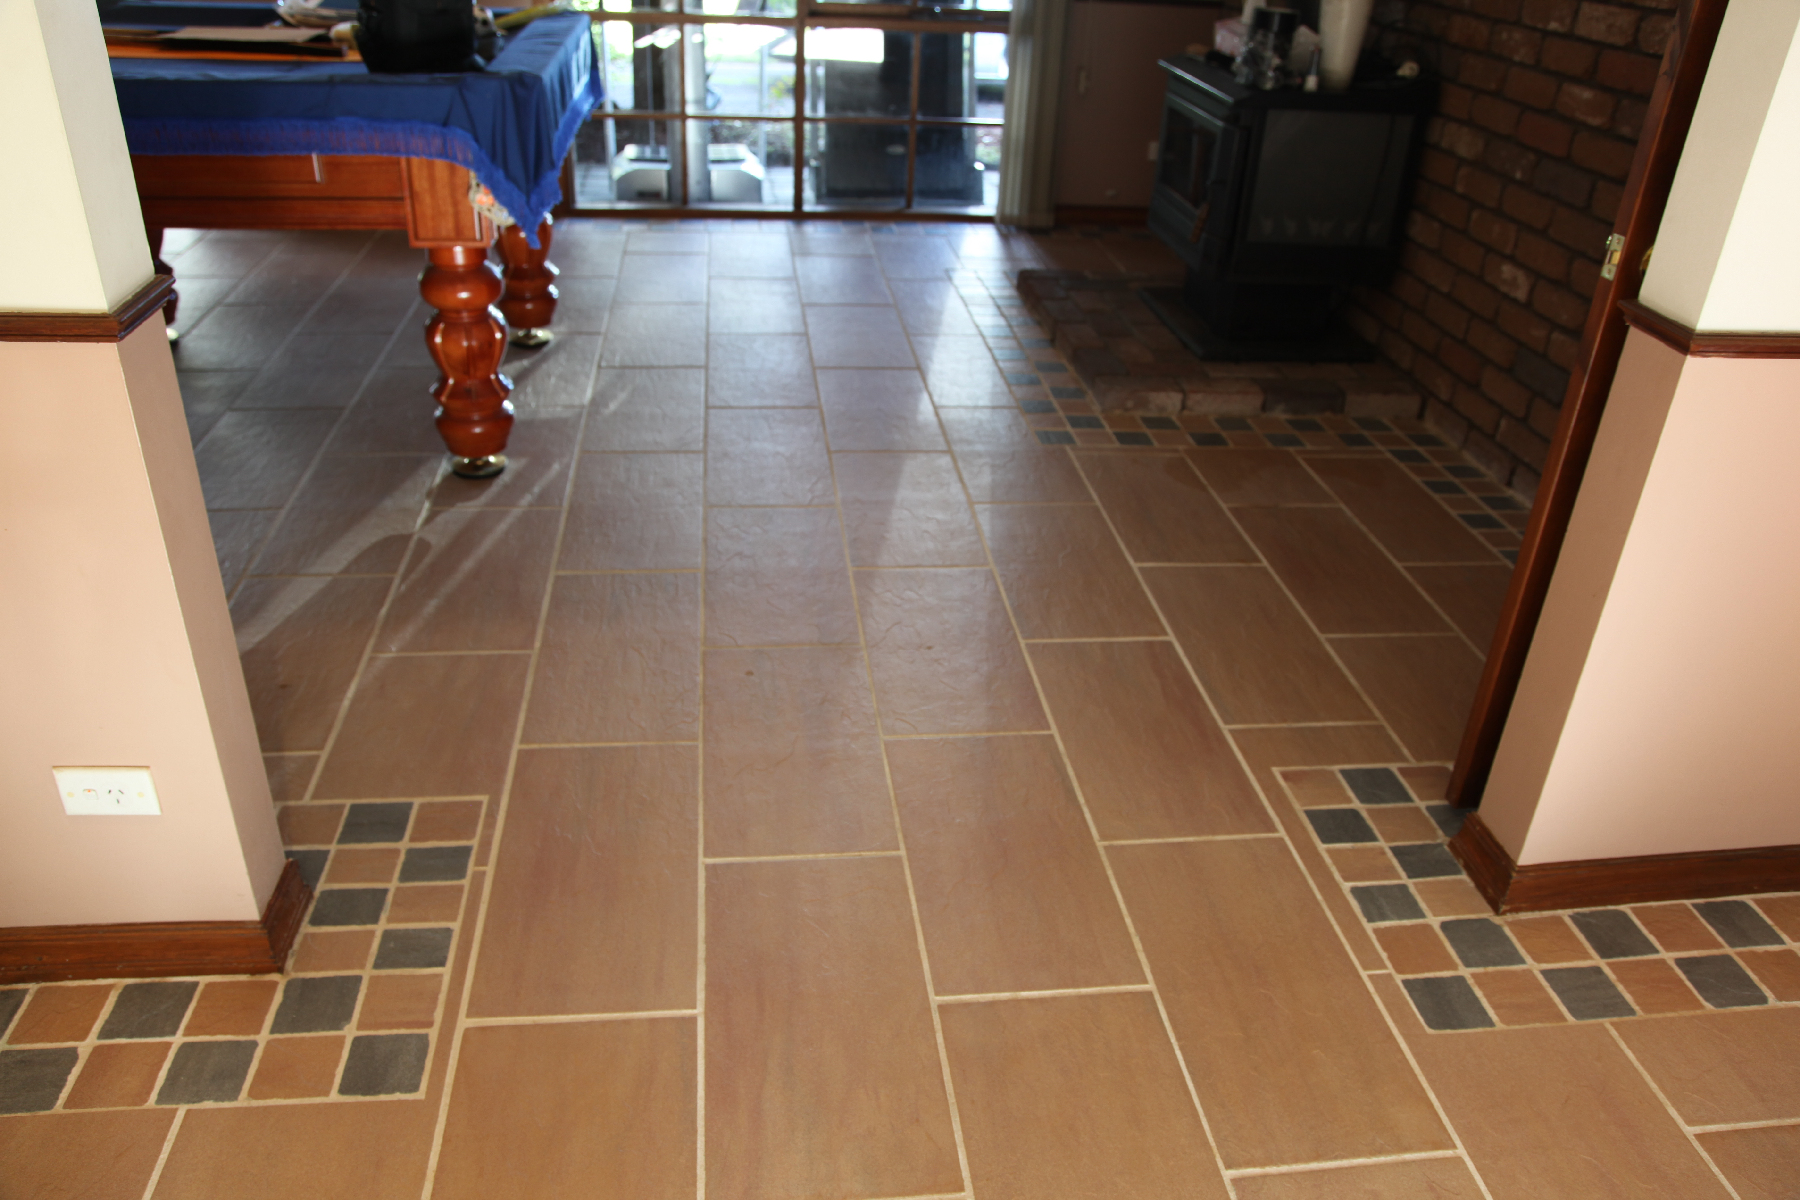 Tile & Grout Cleaning Melbourne - Dining room tiles after cleaning